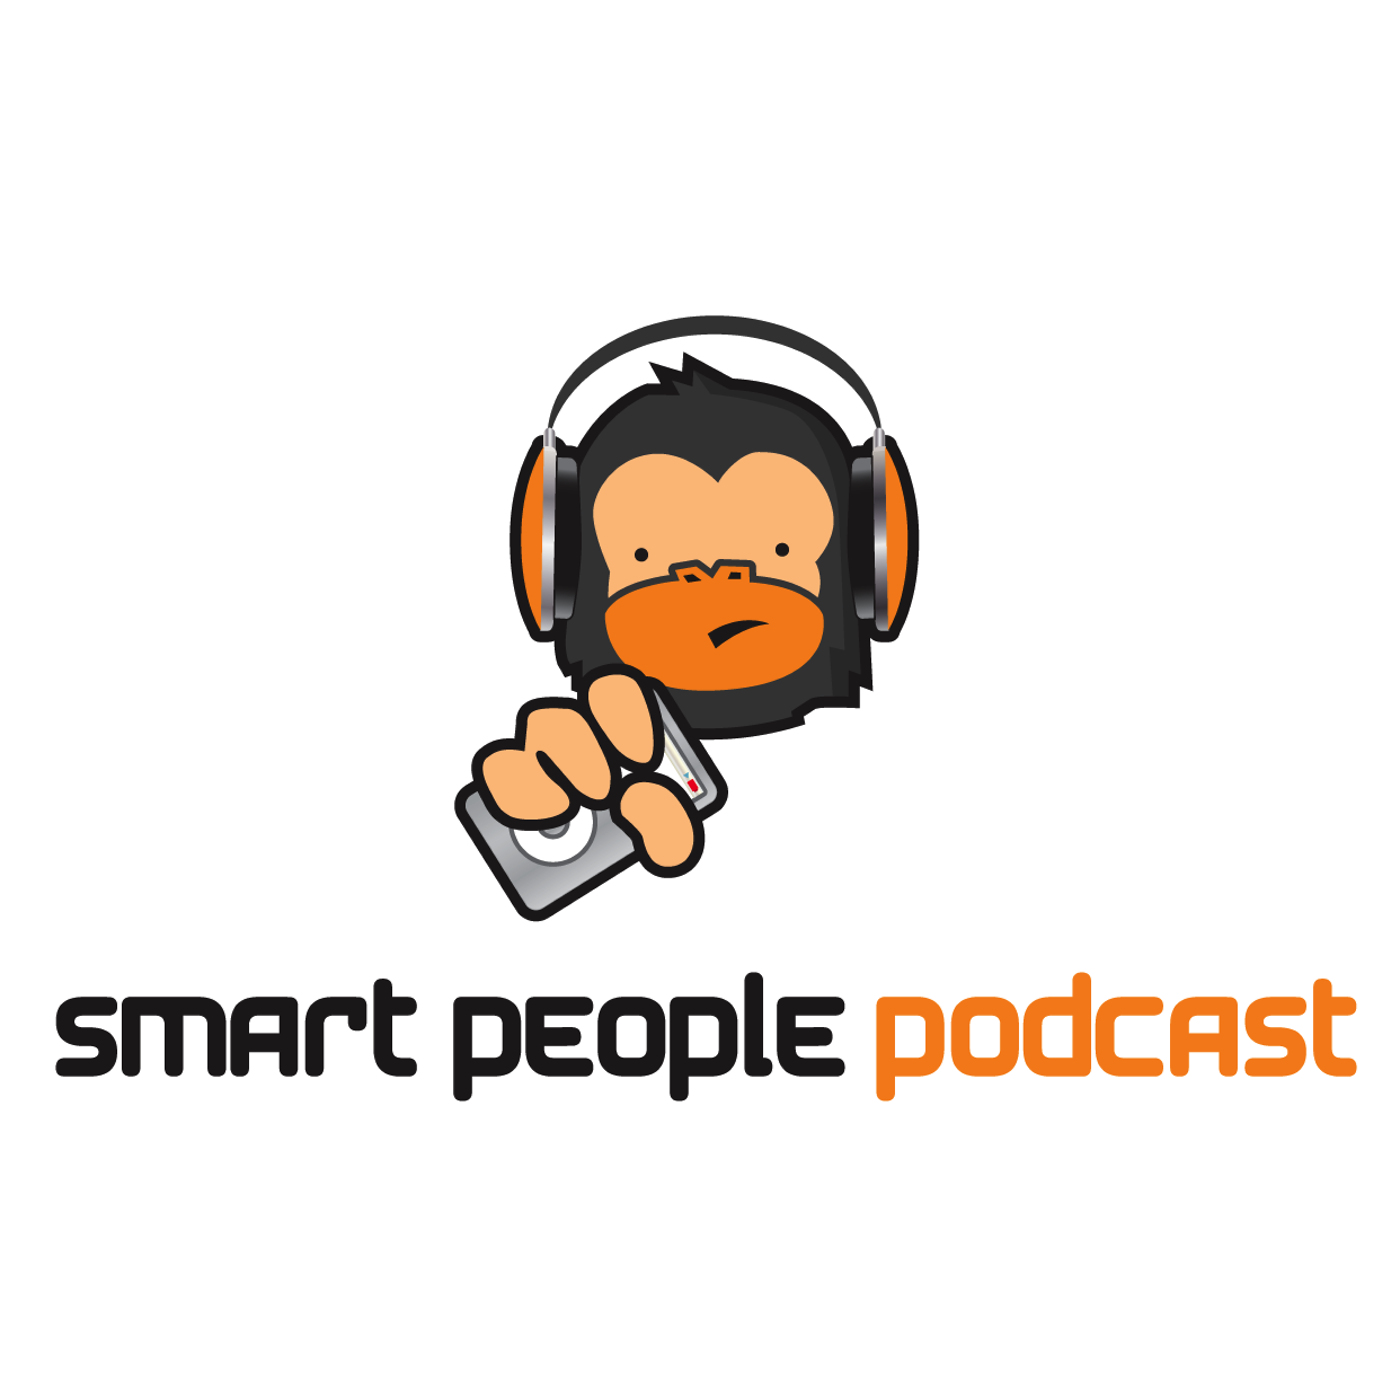 Smart People Podcast Interviews In Education Creativity Business Wiring Specialties Coupon Code And More By Jon Chris On Apple Podcasts